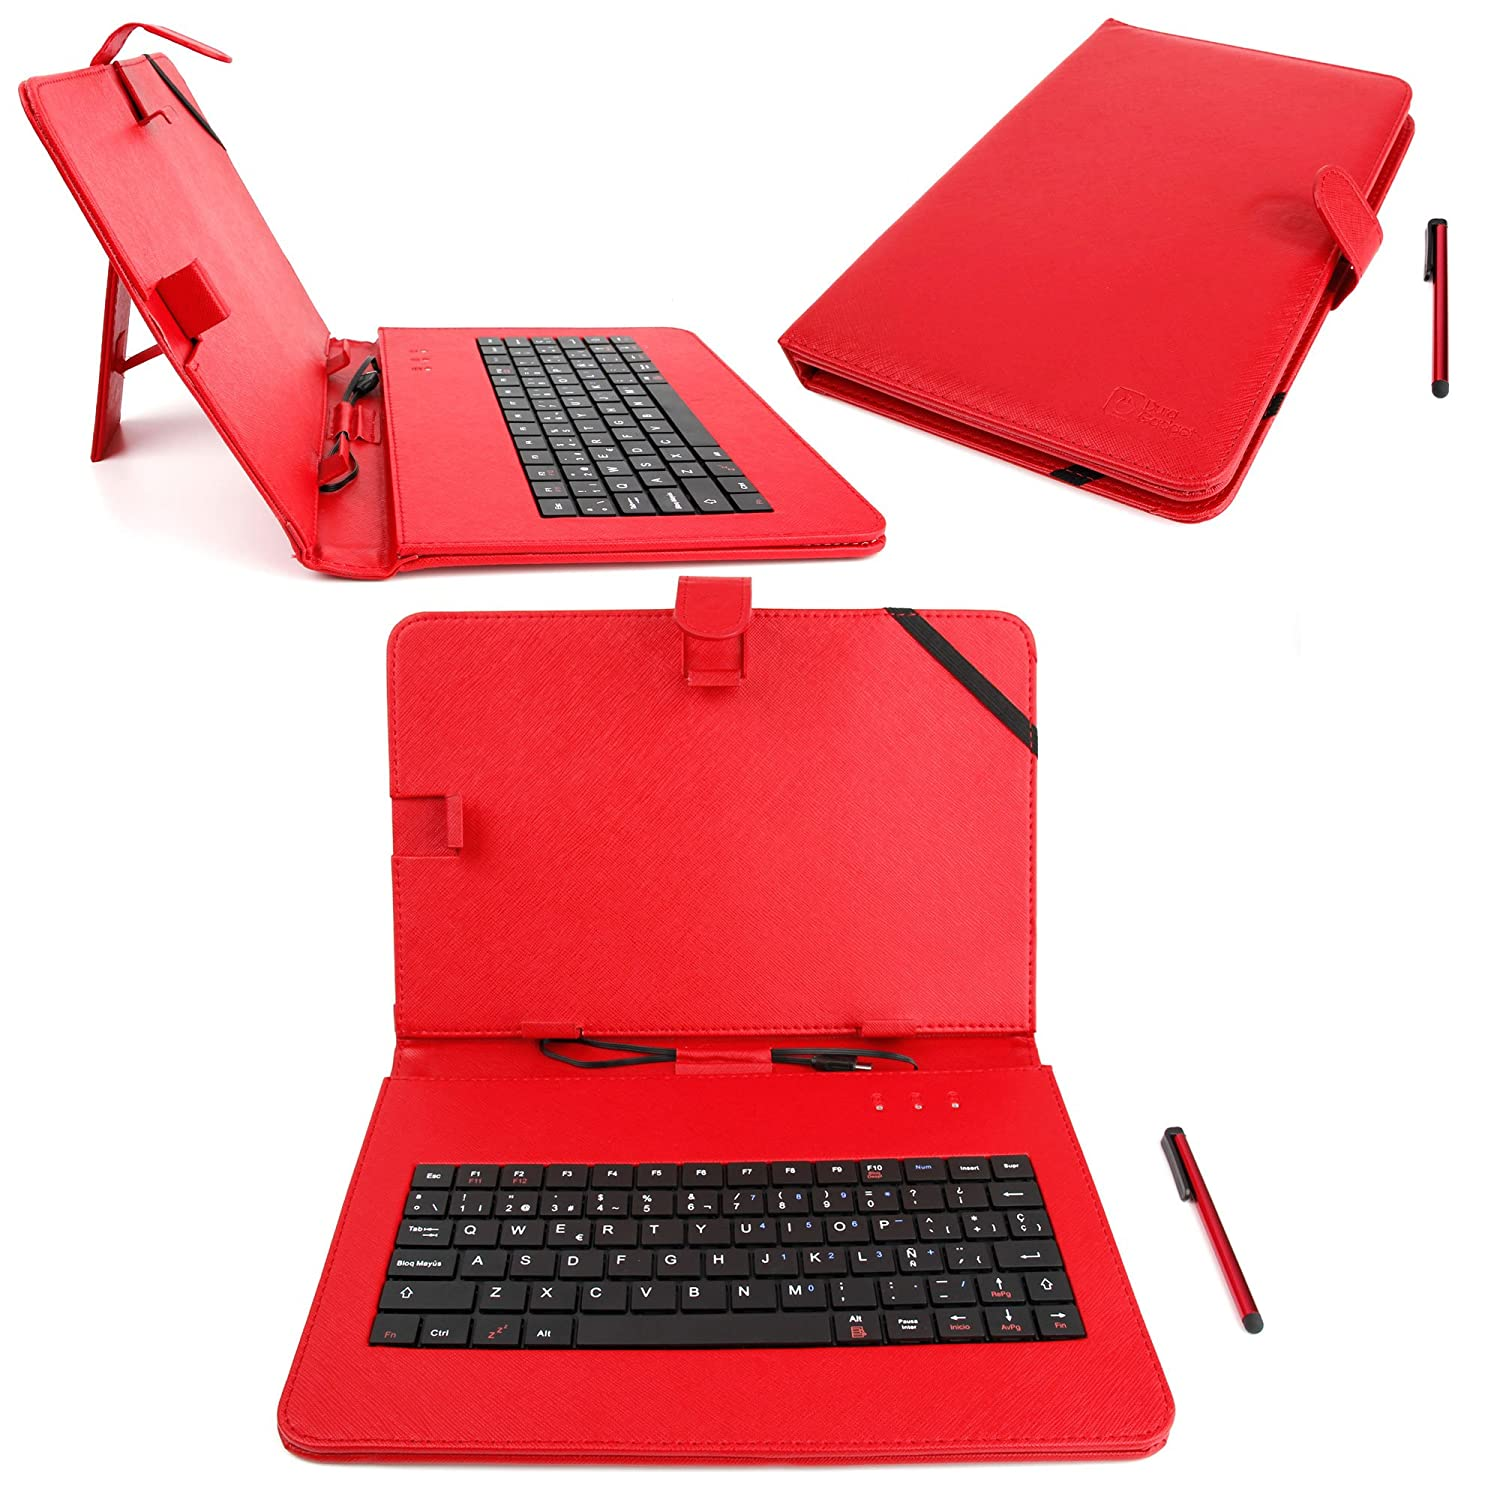 Amazon.com: DURAGADGET Spanish (ES) QWERTY Keyboard 10